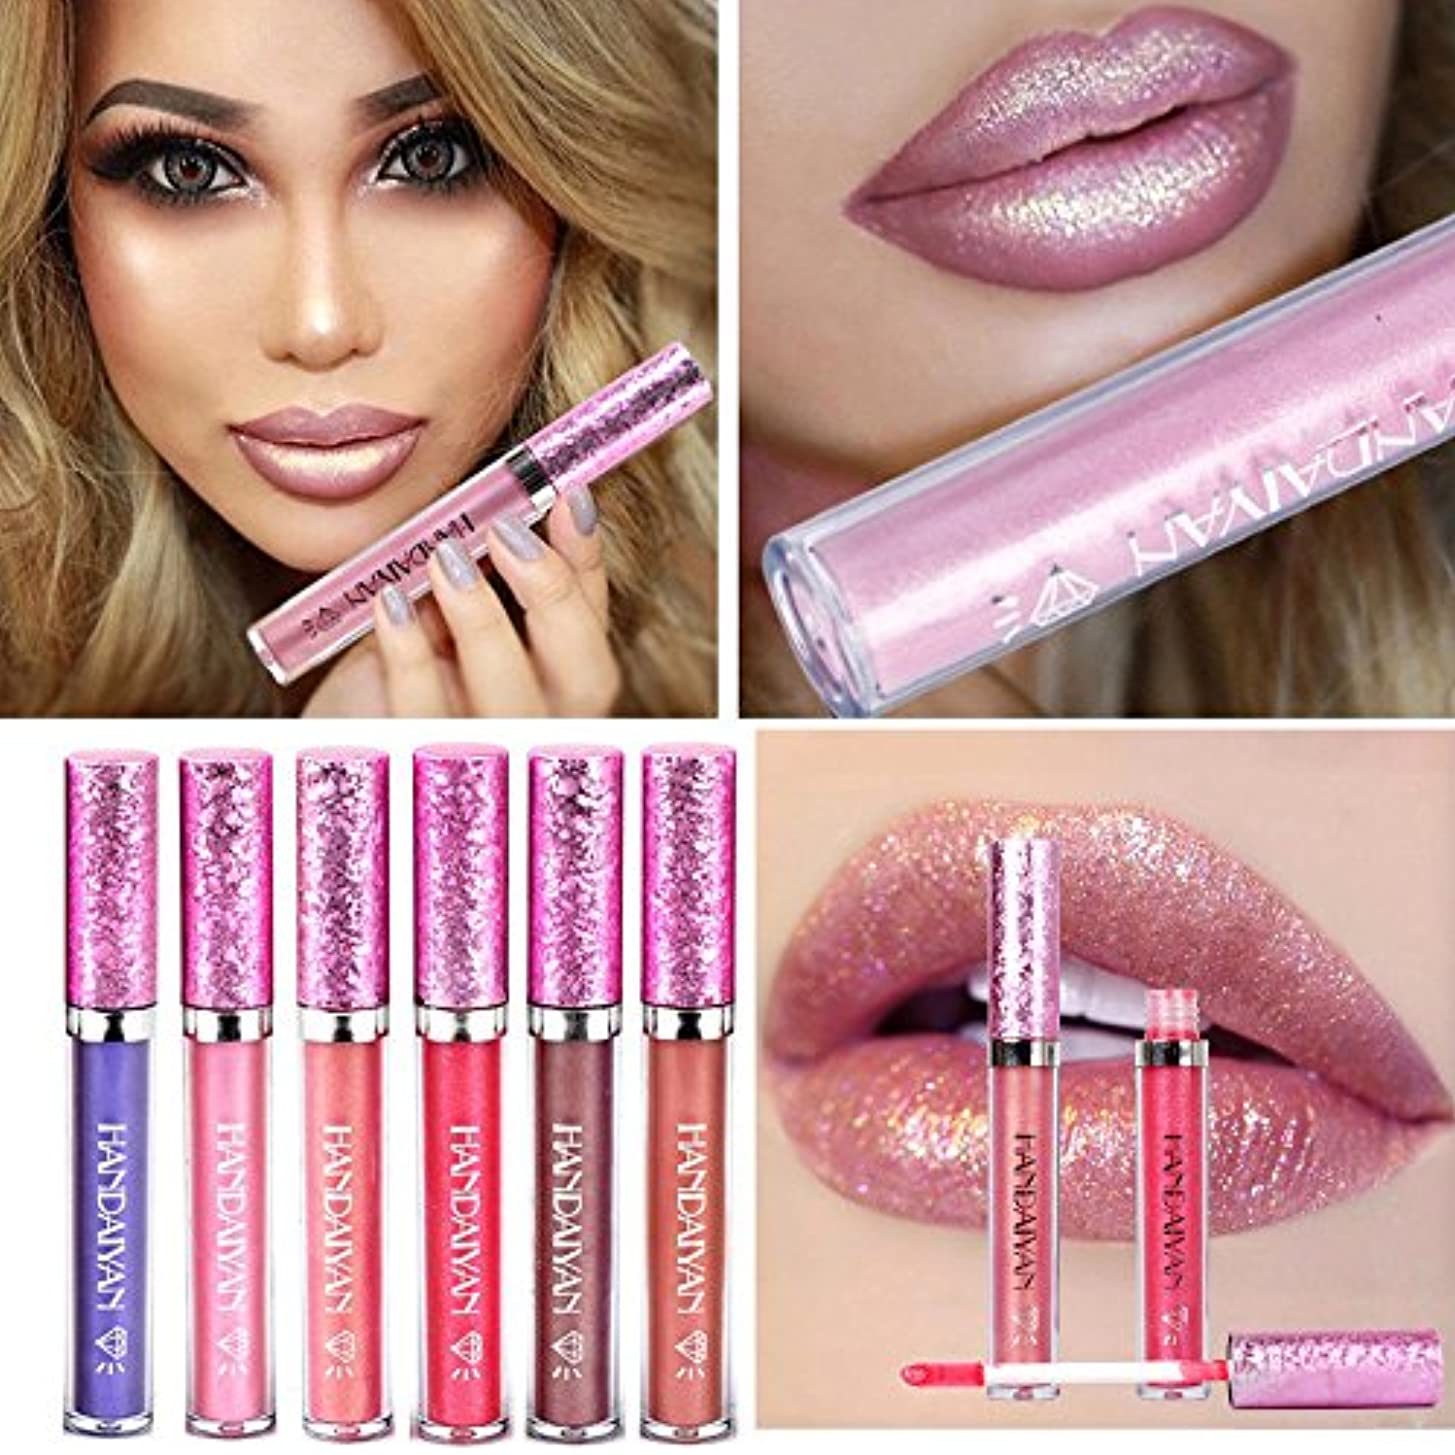 民主主義眠り約束するHANDAIYAN Liquid Pearly Glitter Lipsticks Set - 6 pcs Long Lasting Nonstick Lip Gloss Mermaid Waterproof Lipstick...